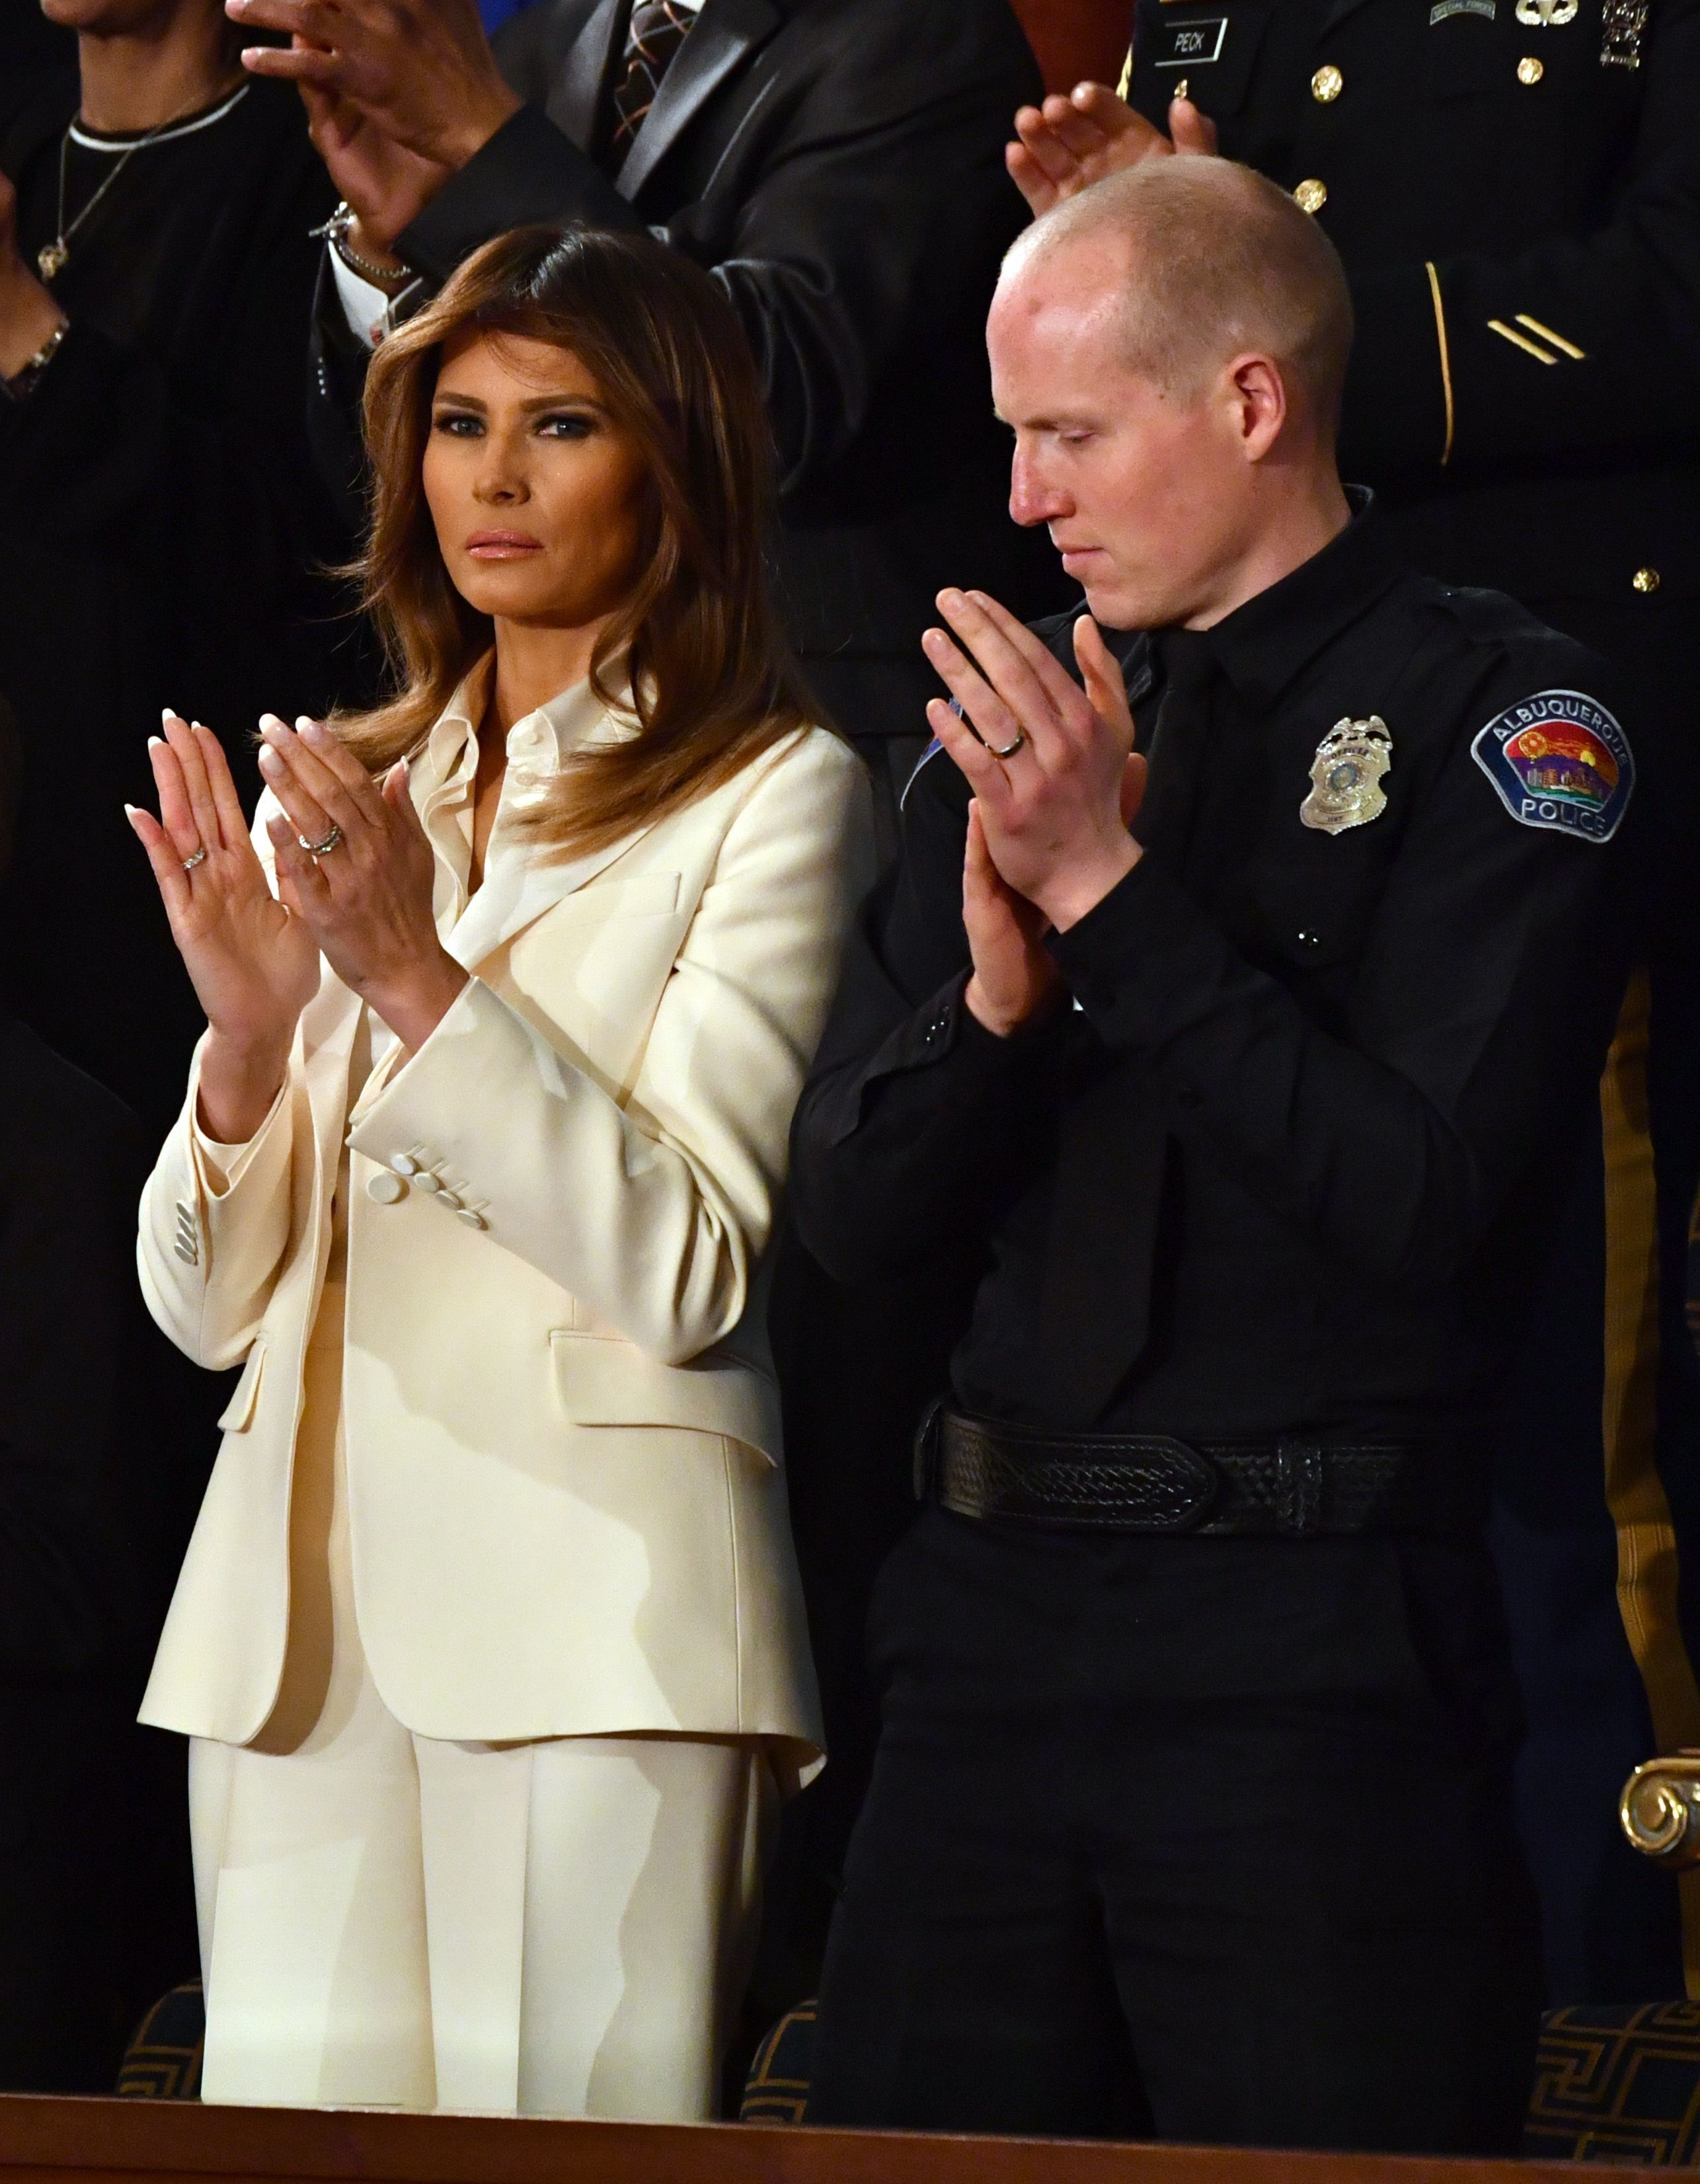 US First Lady Melania Trump and Police Officer Ryan Holets applaud during the State of the Union address at the US Capitol in Washington, DC, on January 30, 2018.  / AFP PHOTO / Nicholas Kamm        (Photo credit should read NICHOLAS KAMM/AFP/Getty Images)